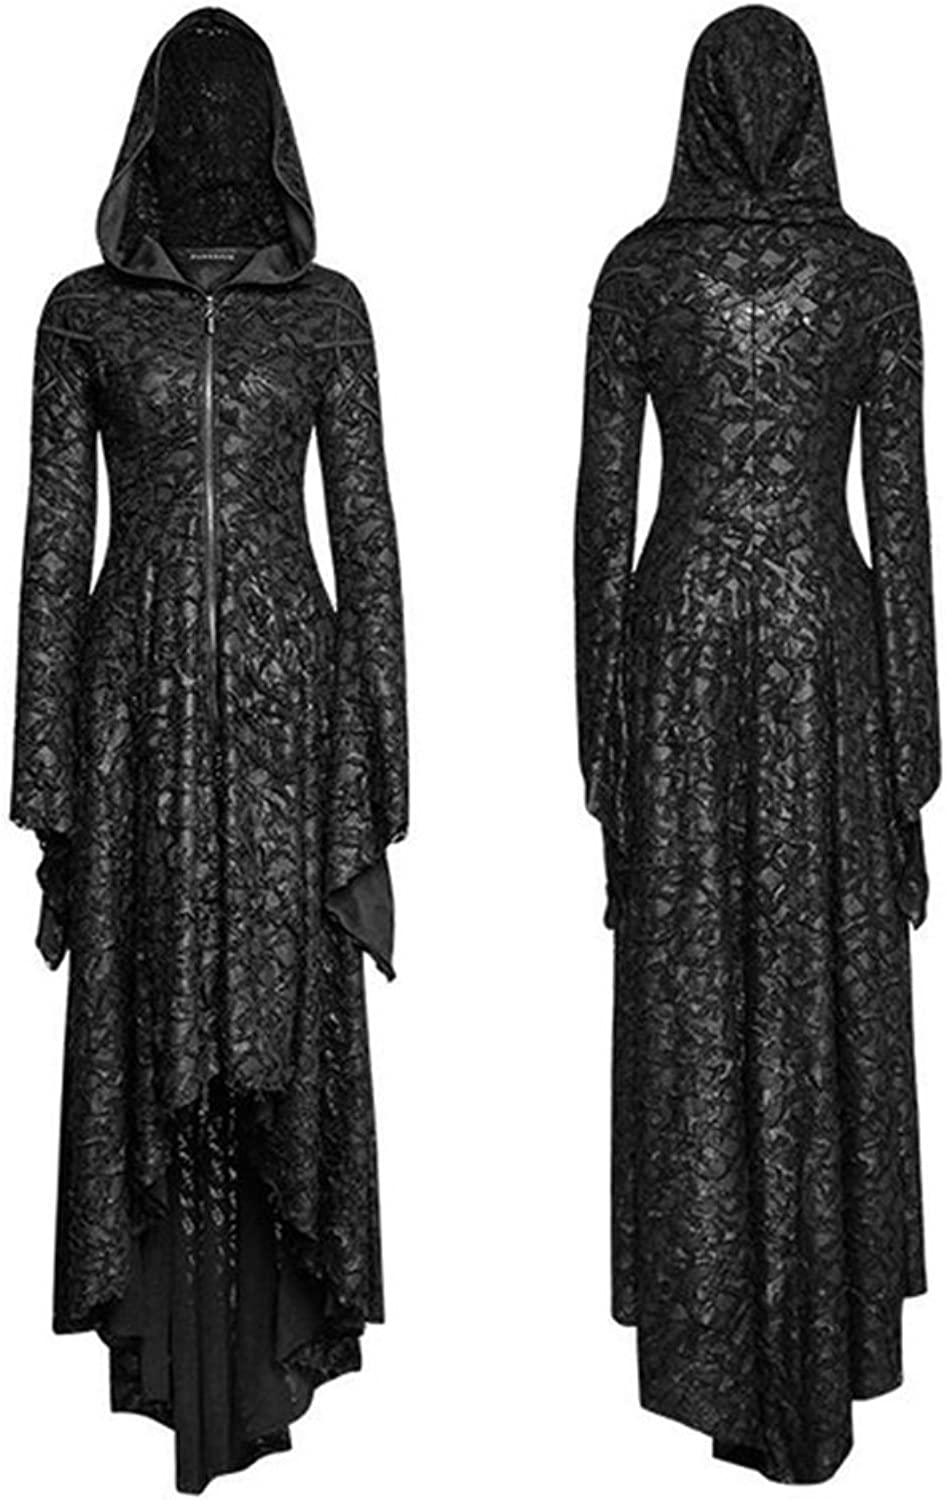 PUNK Gothic Hooded Long Dress Women Steampunk Dark Witch Dresses Black Lace Coats